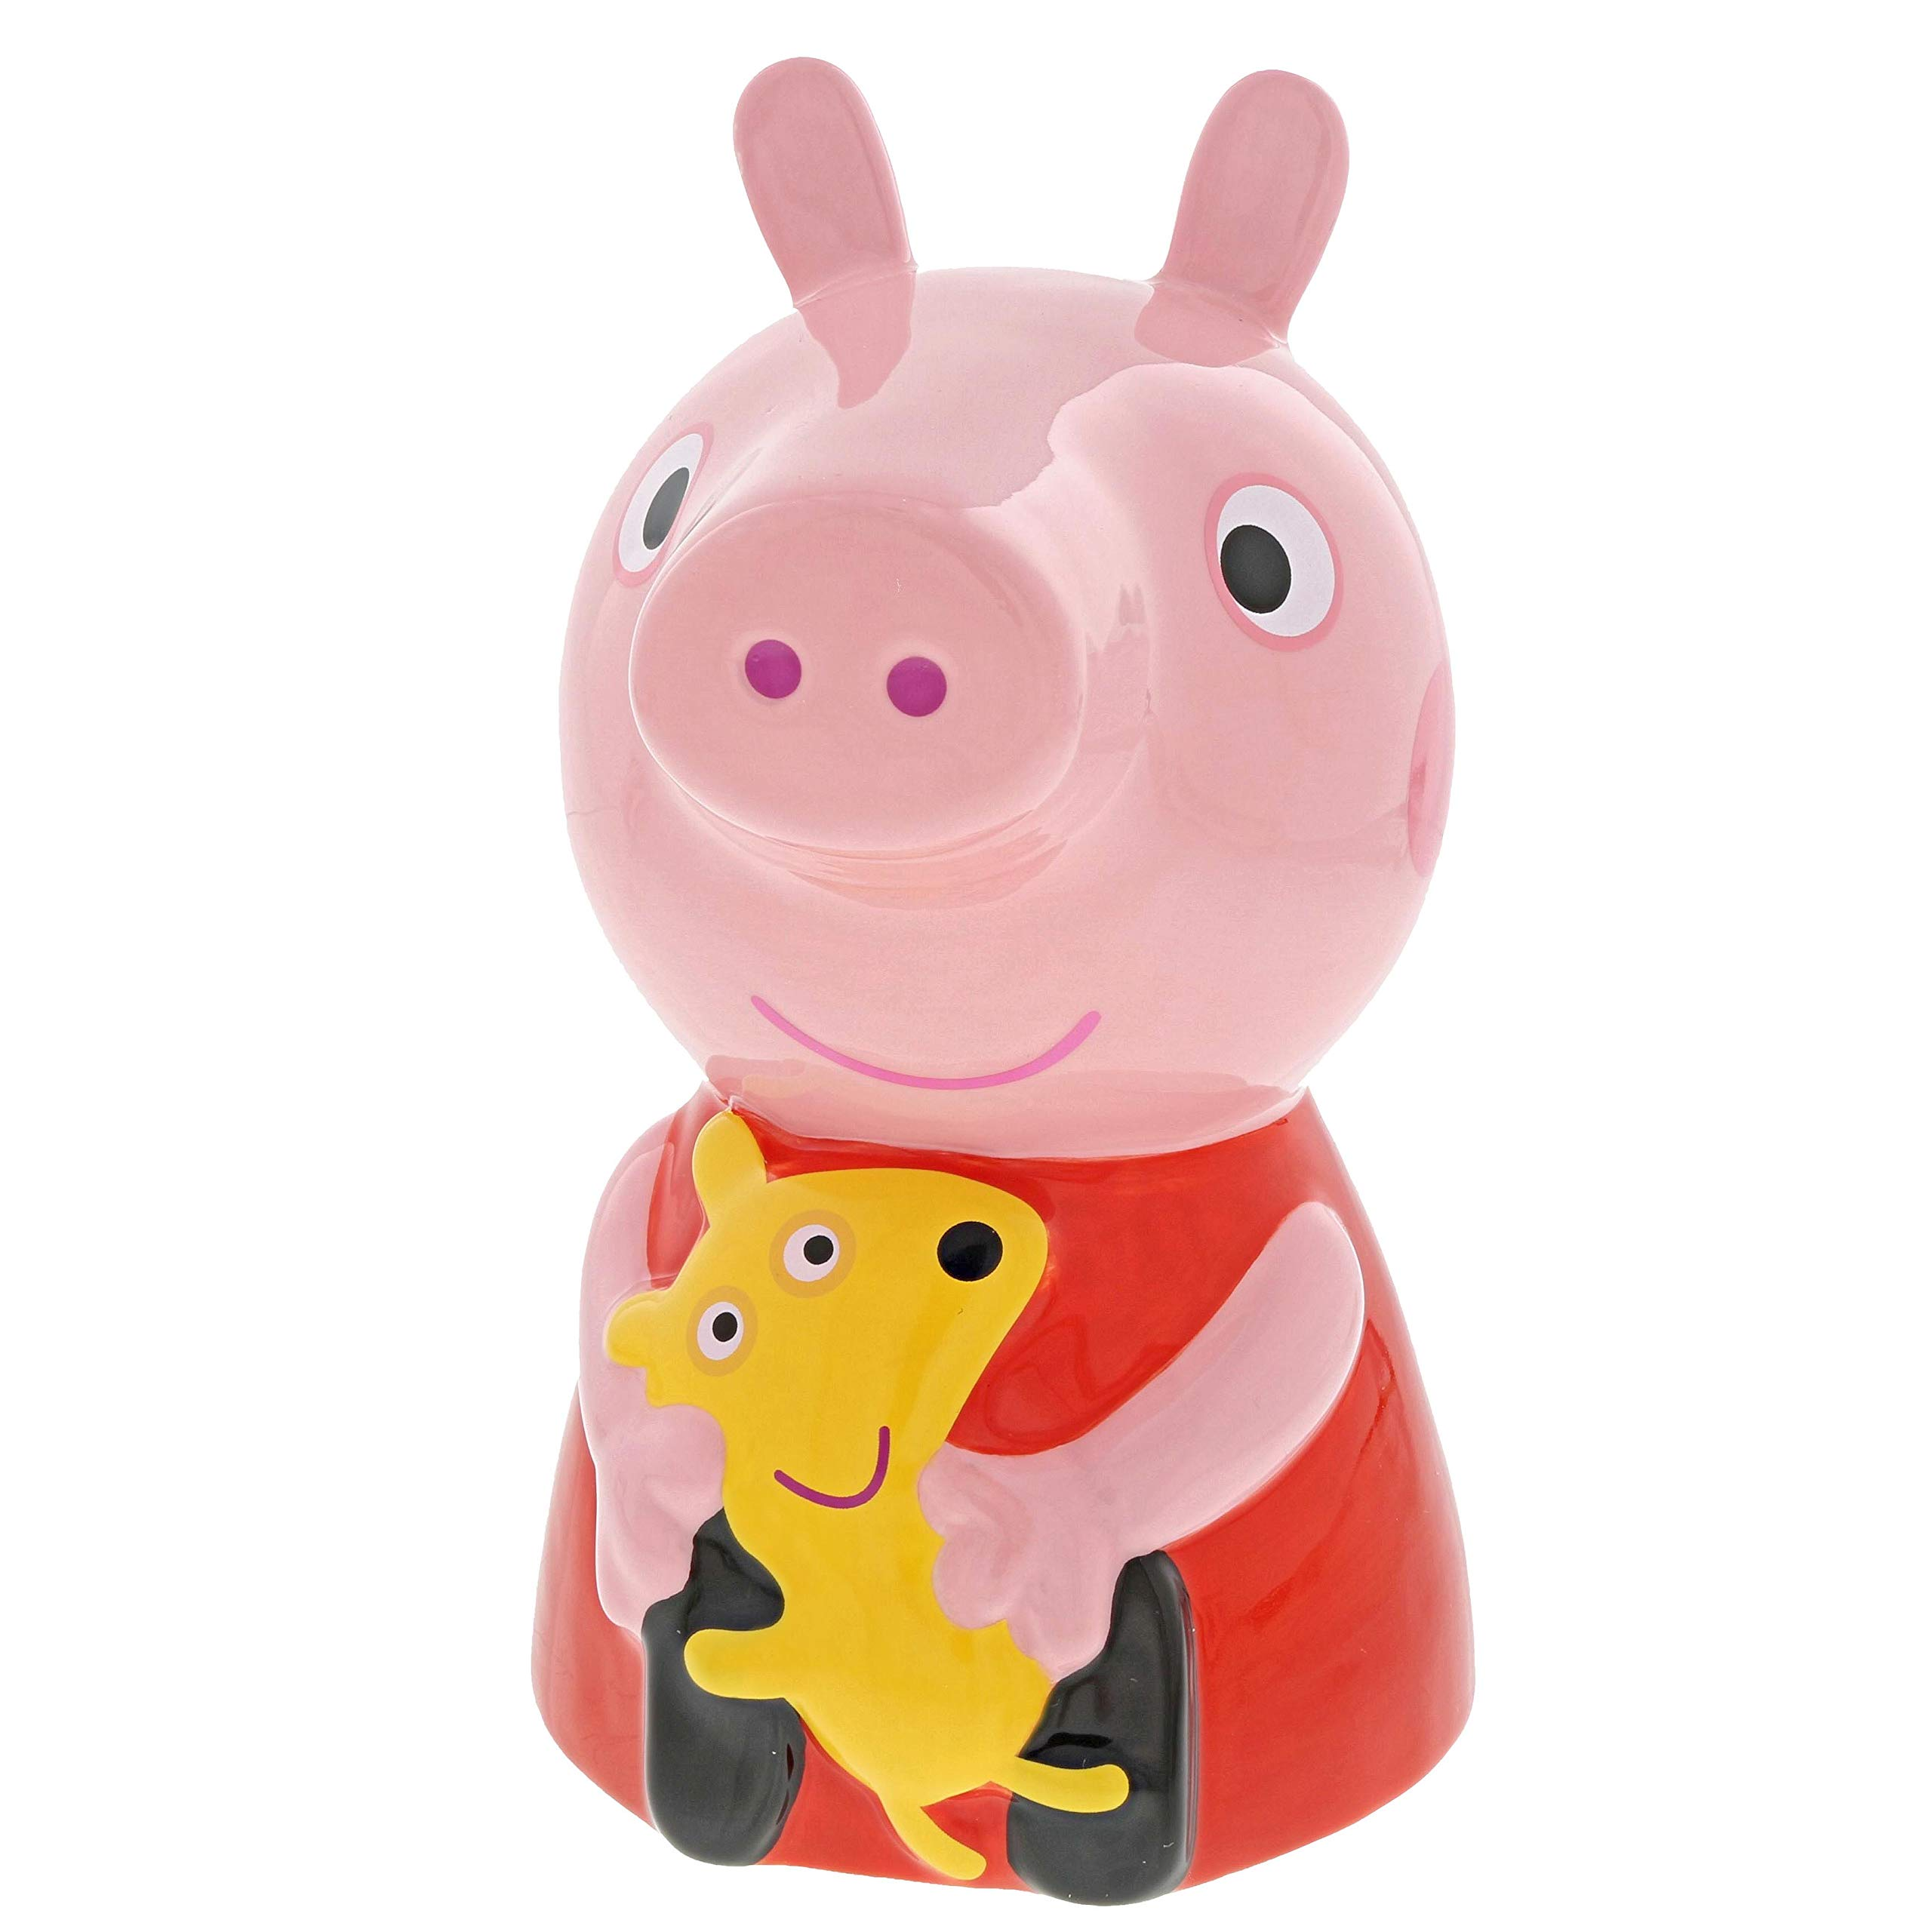 Enesco Peppa Pig Collection A29660 Peppa Pig Ceramic Money Bank A29660 Peppa Pig Ceramic Money Bank by Peppa Pig